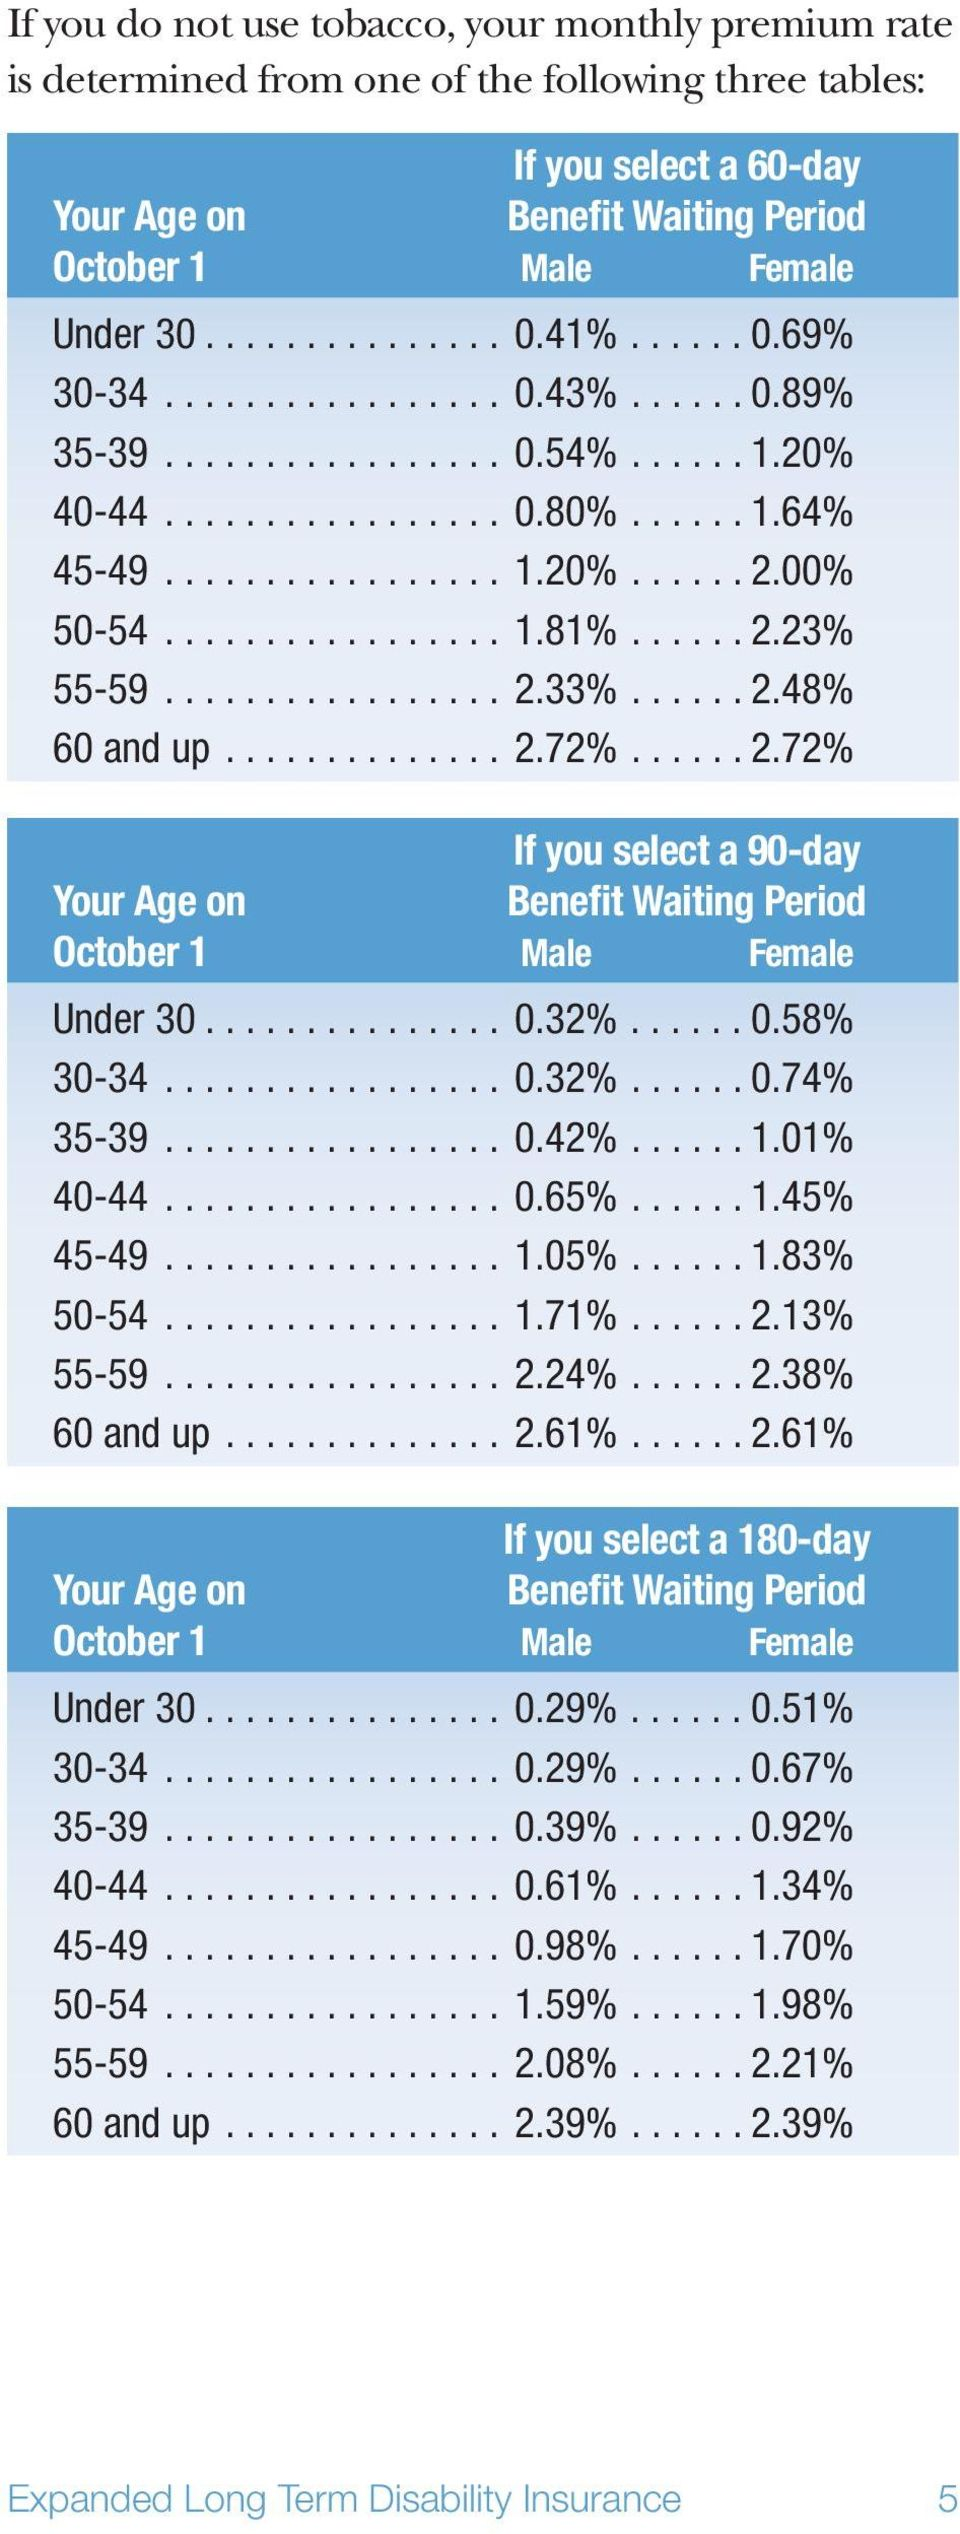 ..... 2.23% 55-59................. 2.33%...... 2.48% 60 and up.............. 2.72%...... 2.72% If you select a 90-day Your Age on Benefit Waiting Period October 1 Male Female Under 30............... 0.